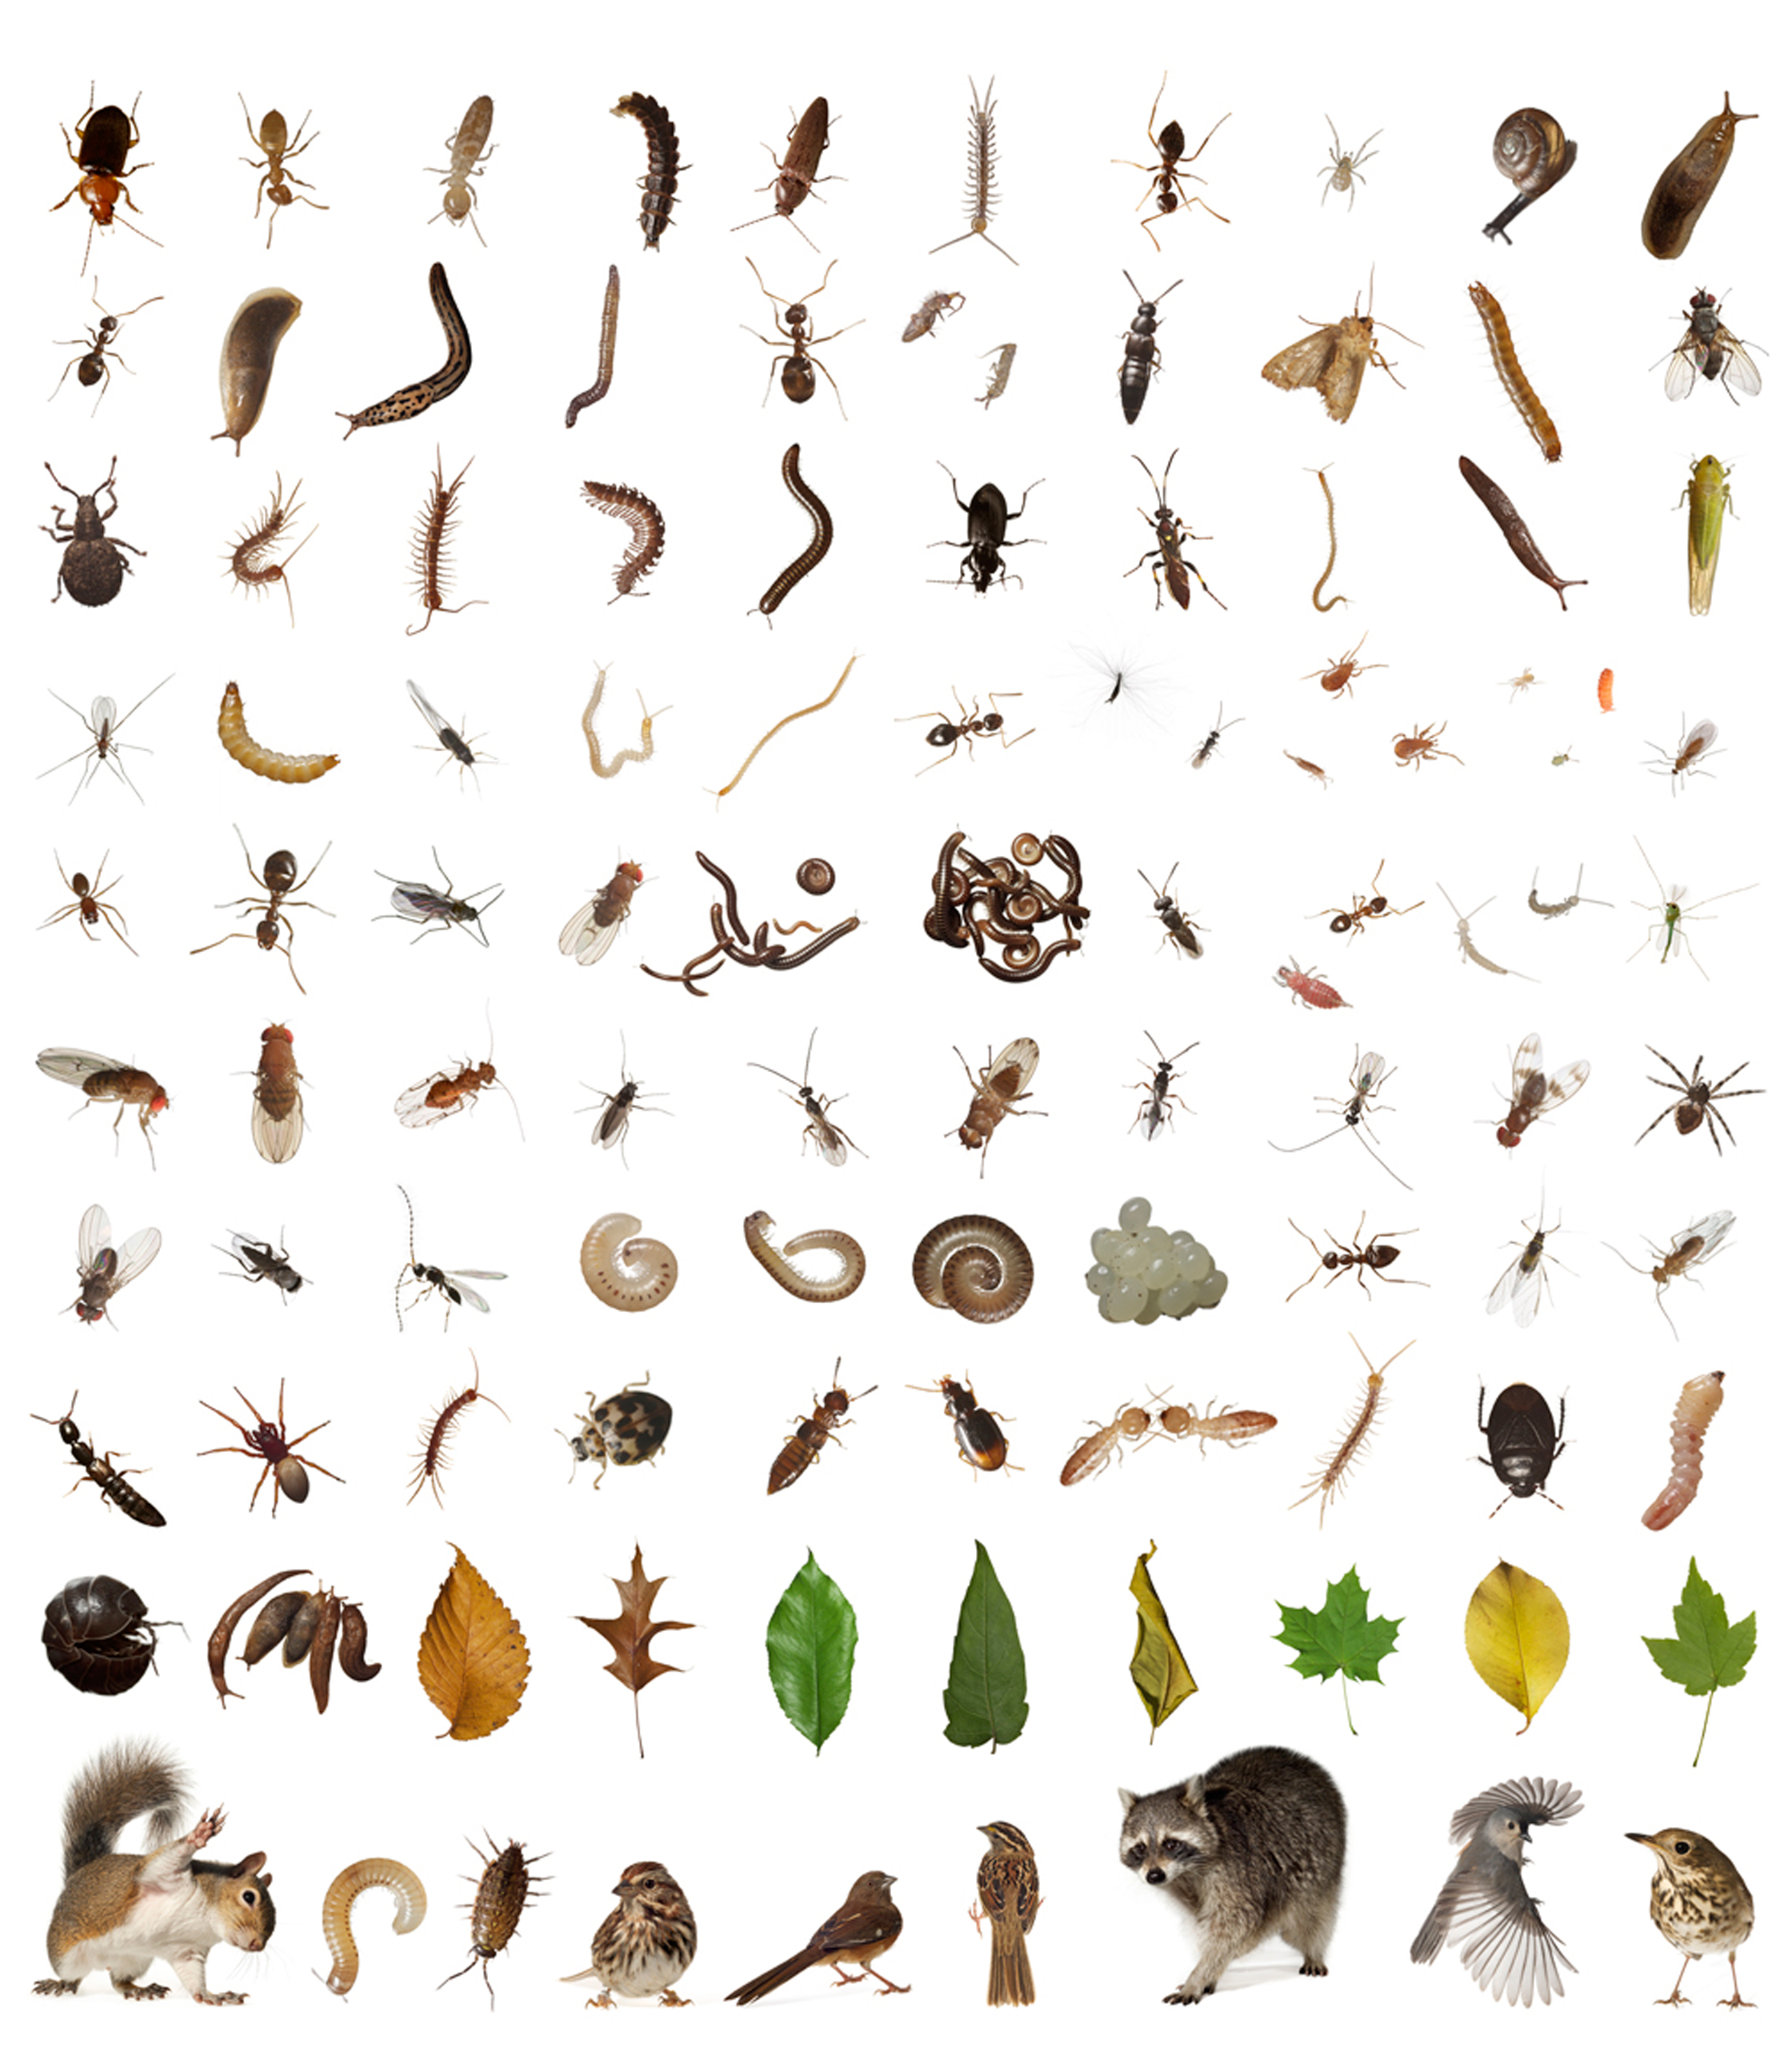 A selection of creatures revealed through inventorying one cubic foot from Hallett Nature Sanctuary in Central Park, New York City.